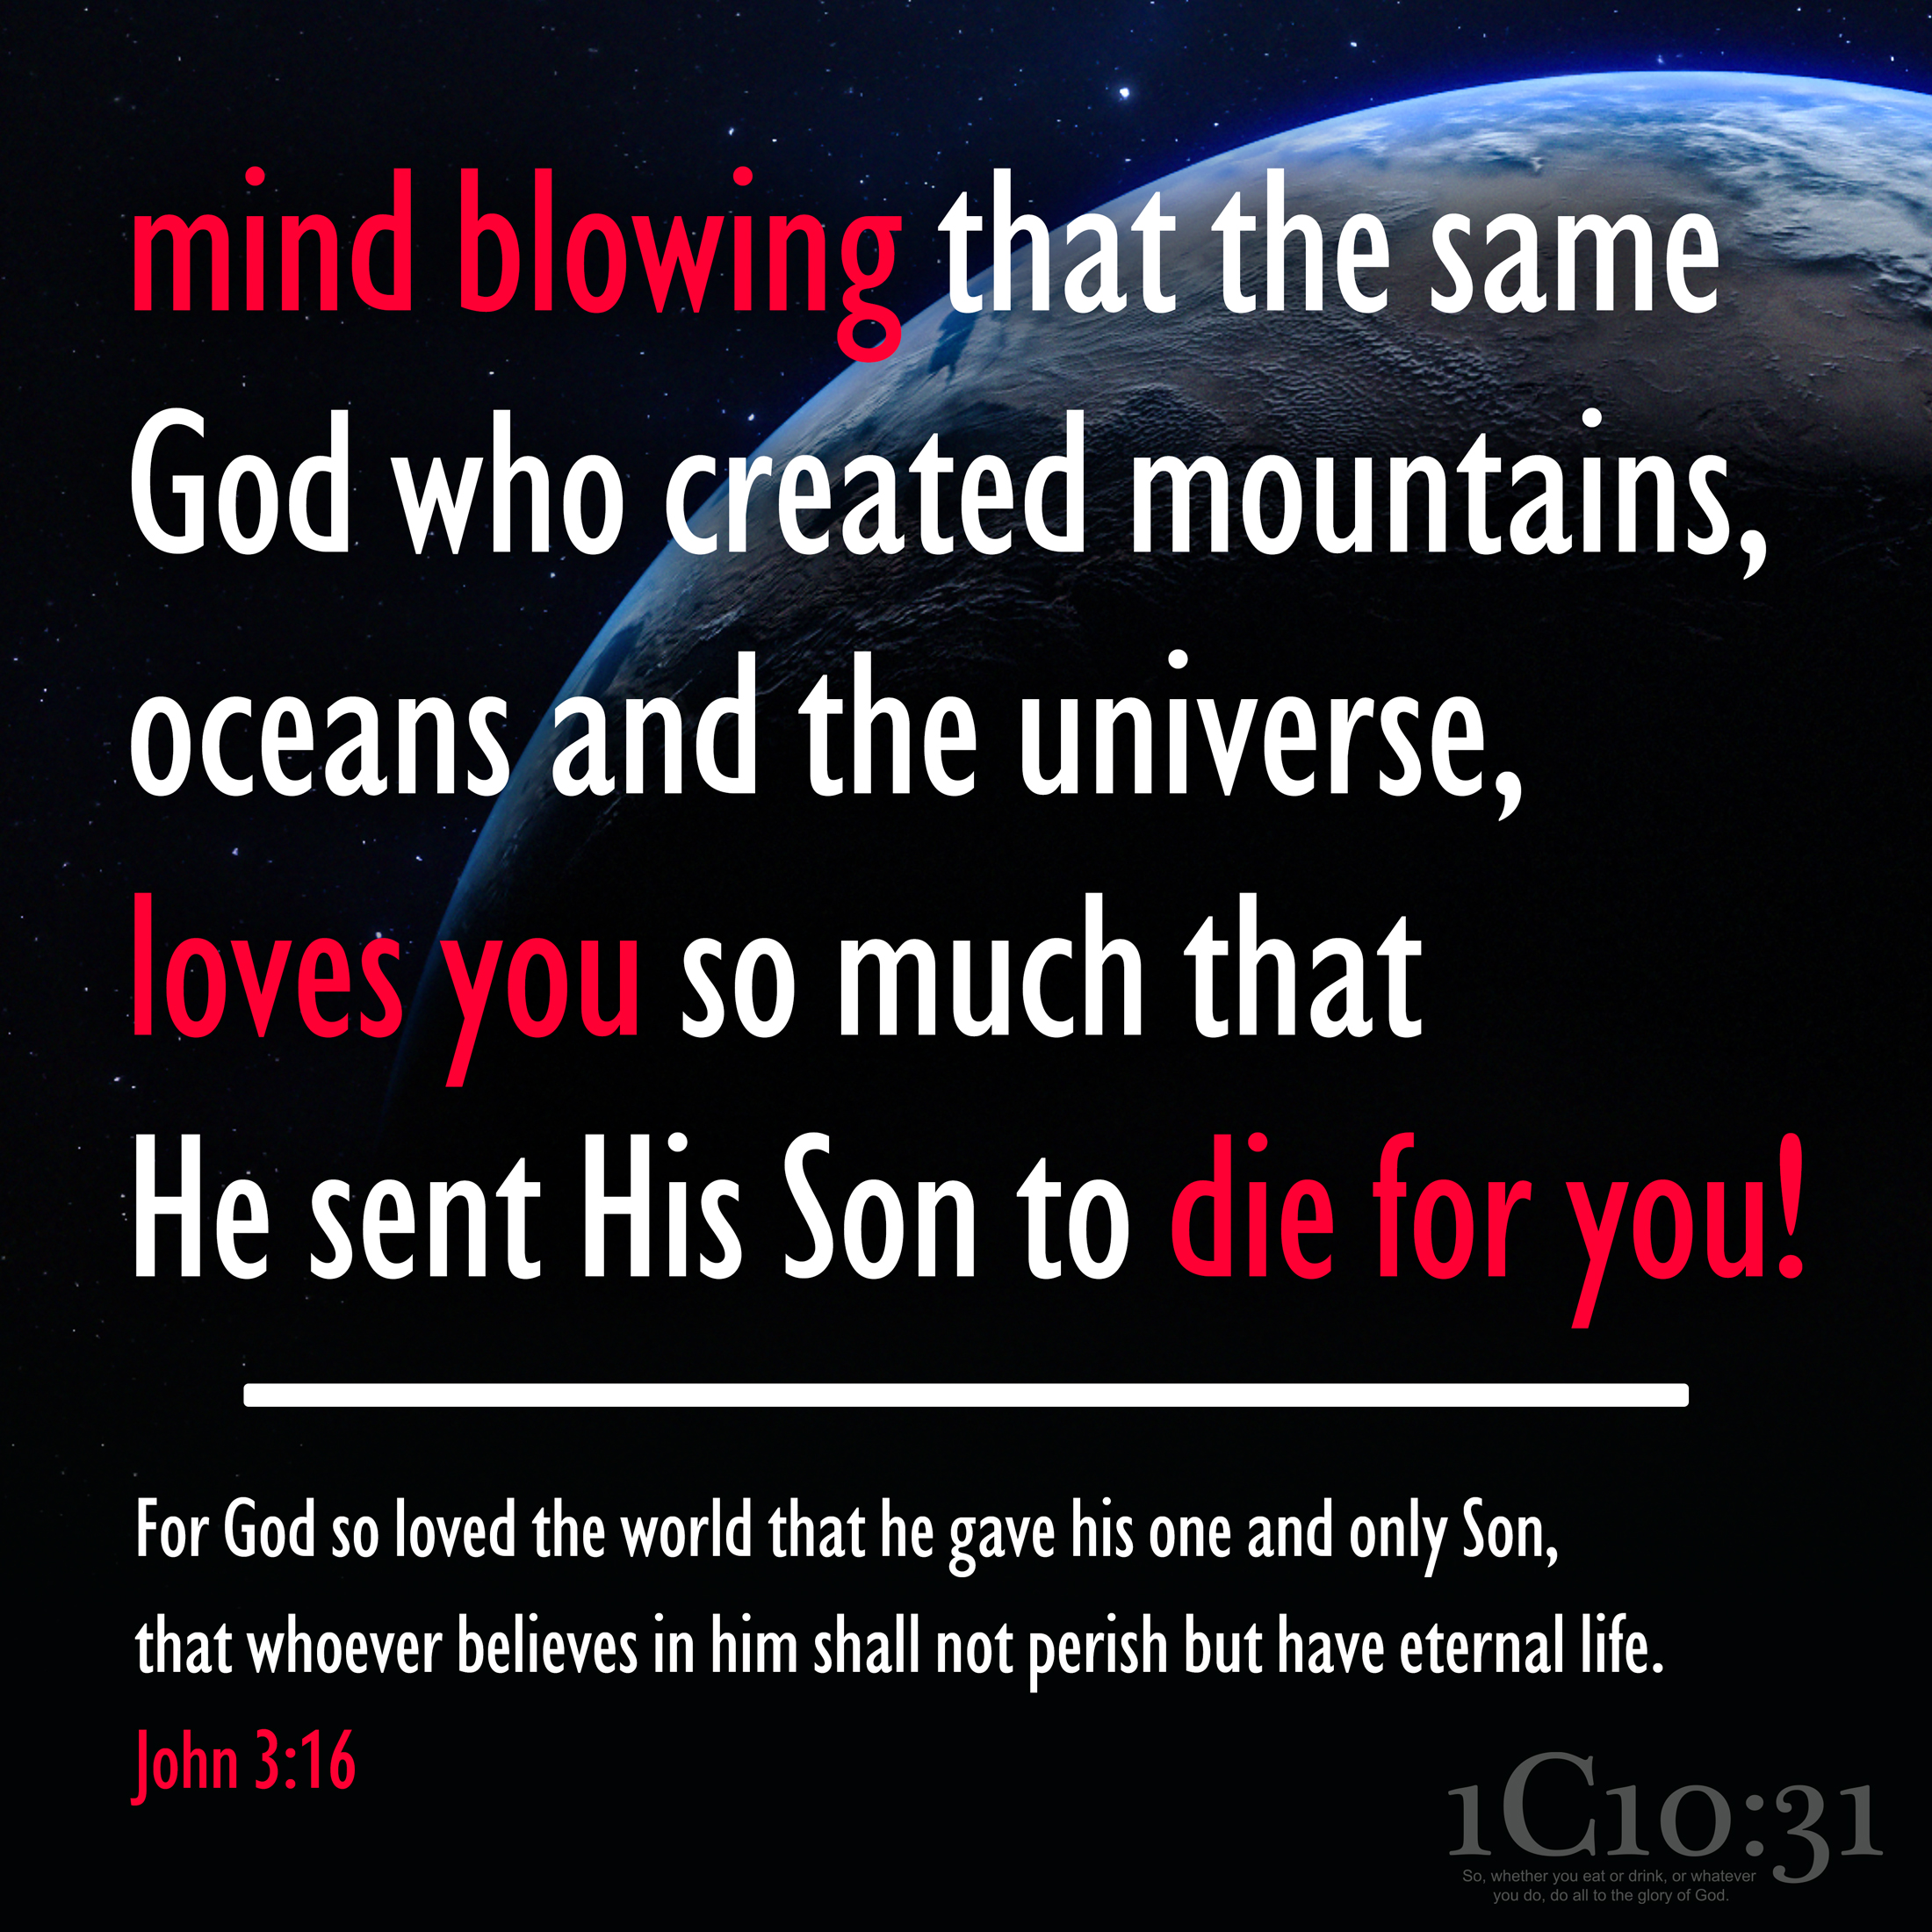 Mind blowing that the same God who created mountains, oceans and the universe, loves you so much that He sent His Son to die for you!